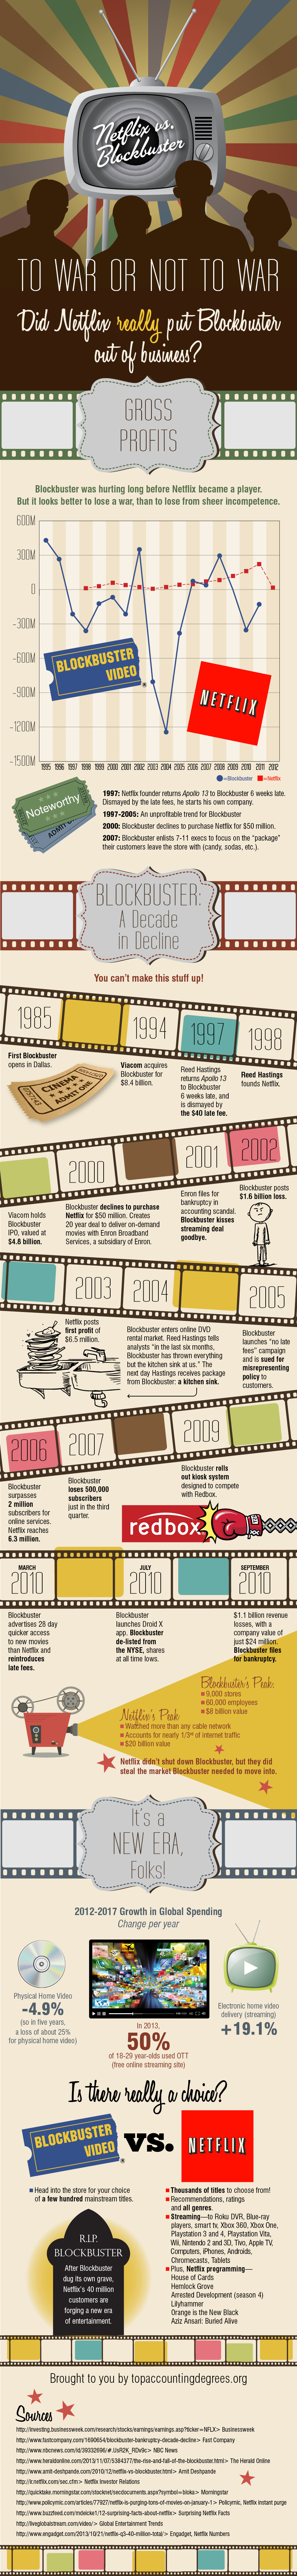 Infographic: How Blockbuster Died